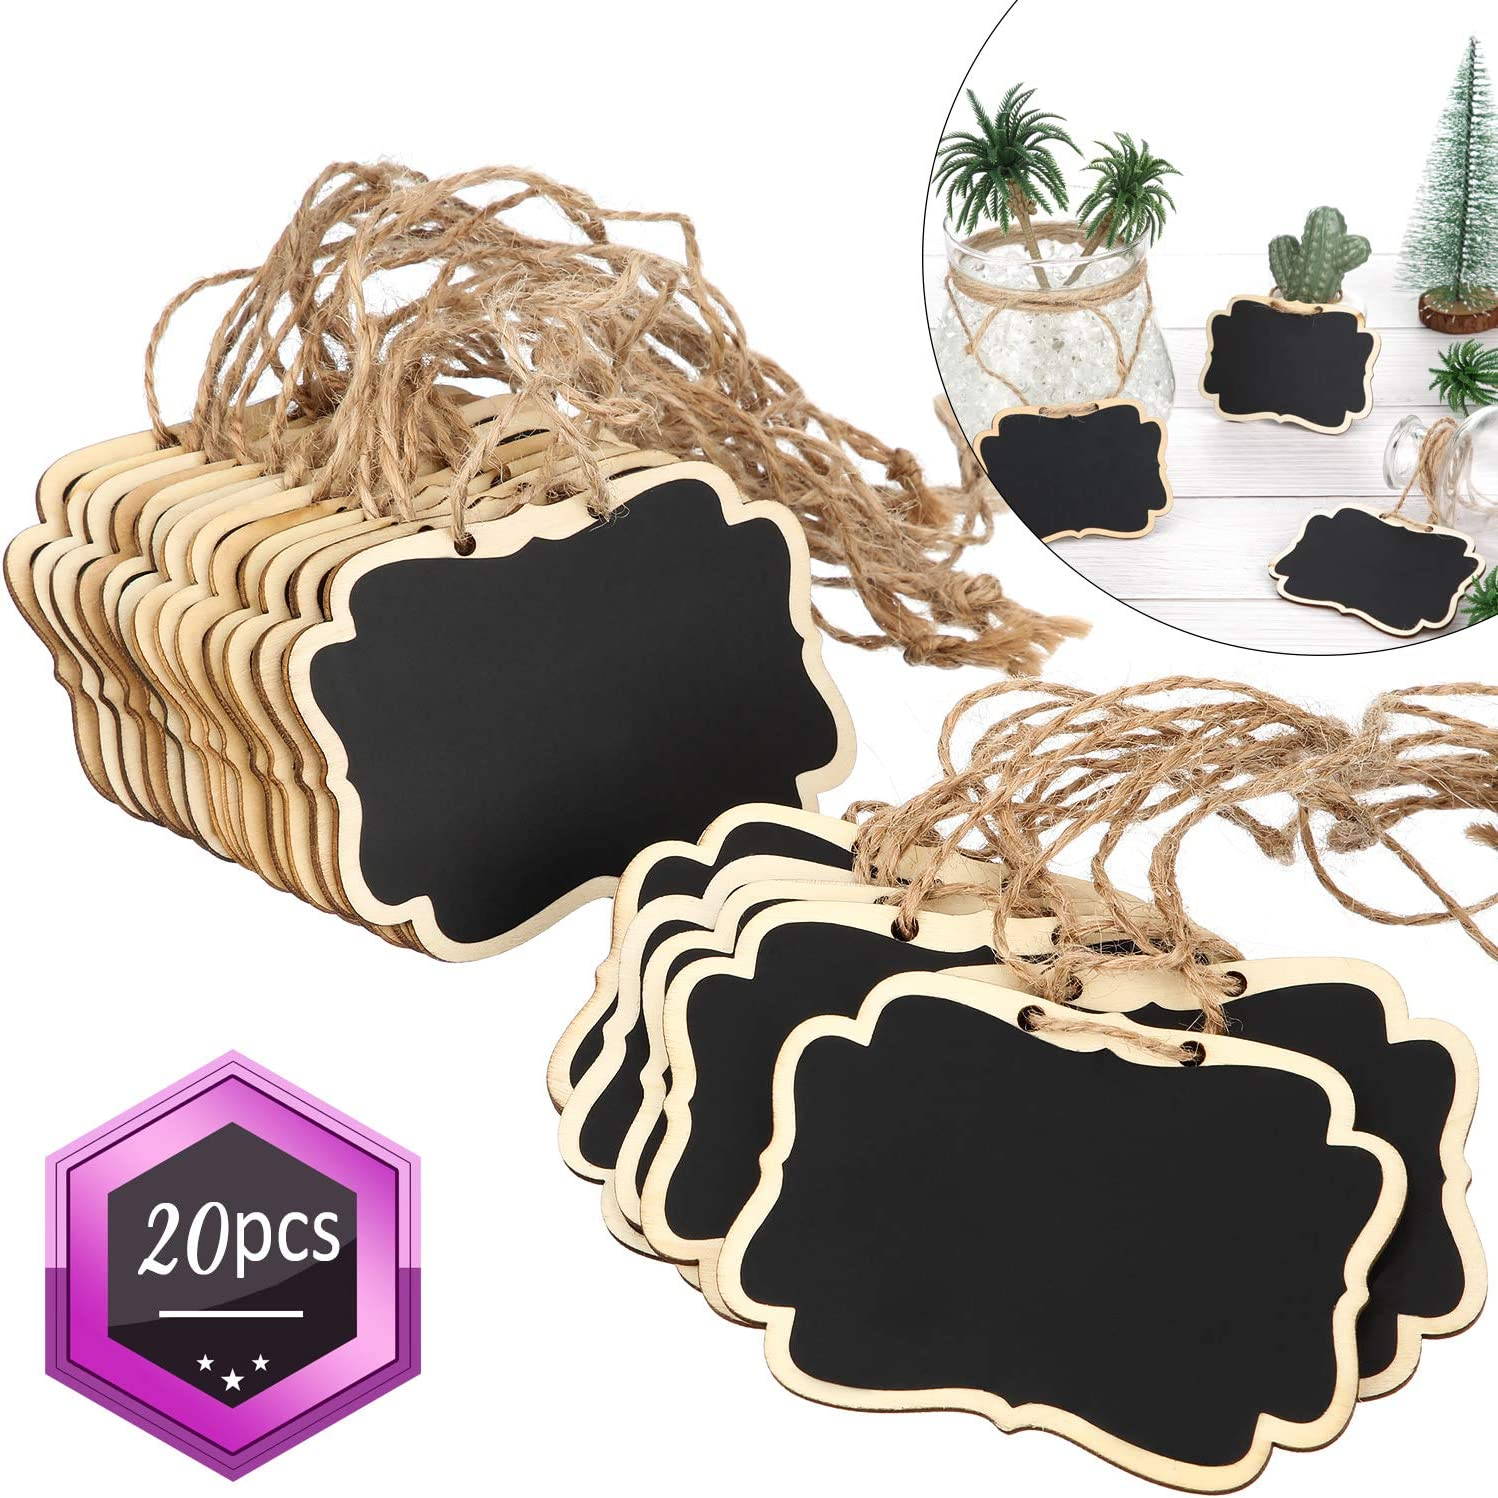 Chalkboard Tags Hanging Wooden Mini Chalkboard Signs Wooden Chalkboard Tags, Hanging Chalkboard Labels, Ideal Price Tags, Message Tags, Black (20)